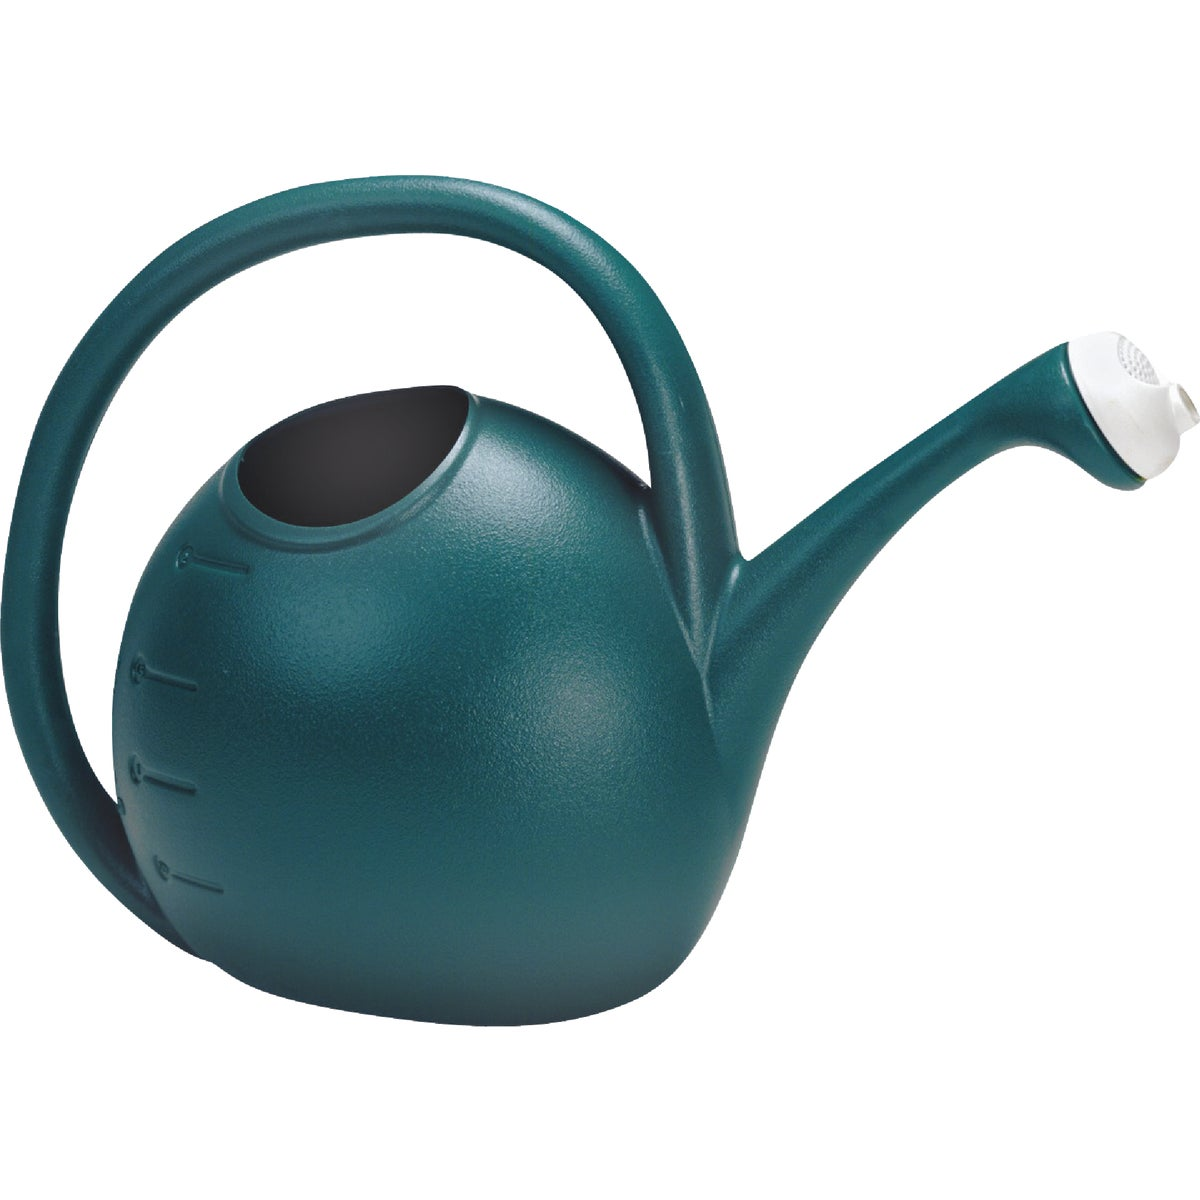 2G GRN POLY WATERING CAN - RZWC2G0B19 by Myers Industries Inc